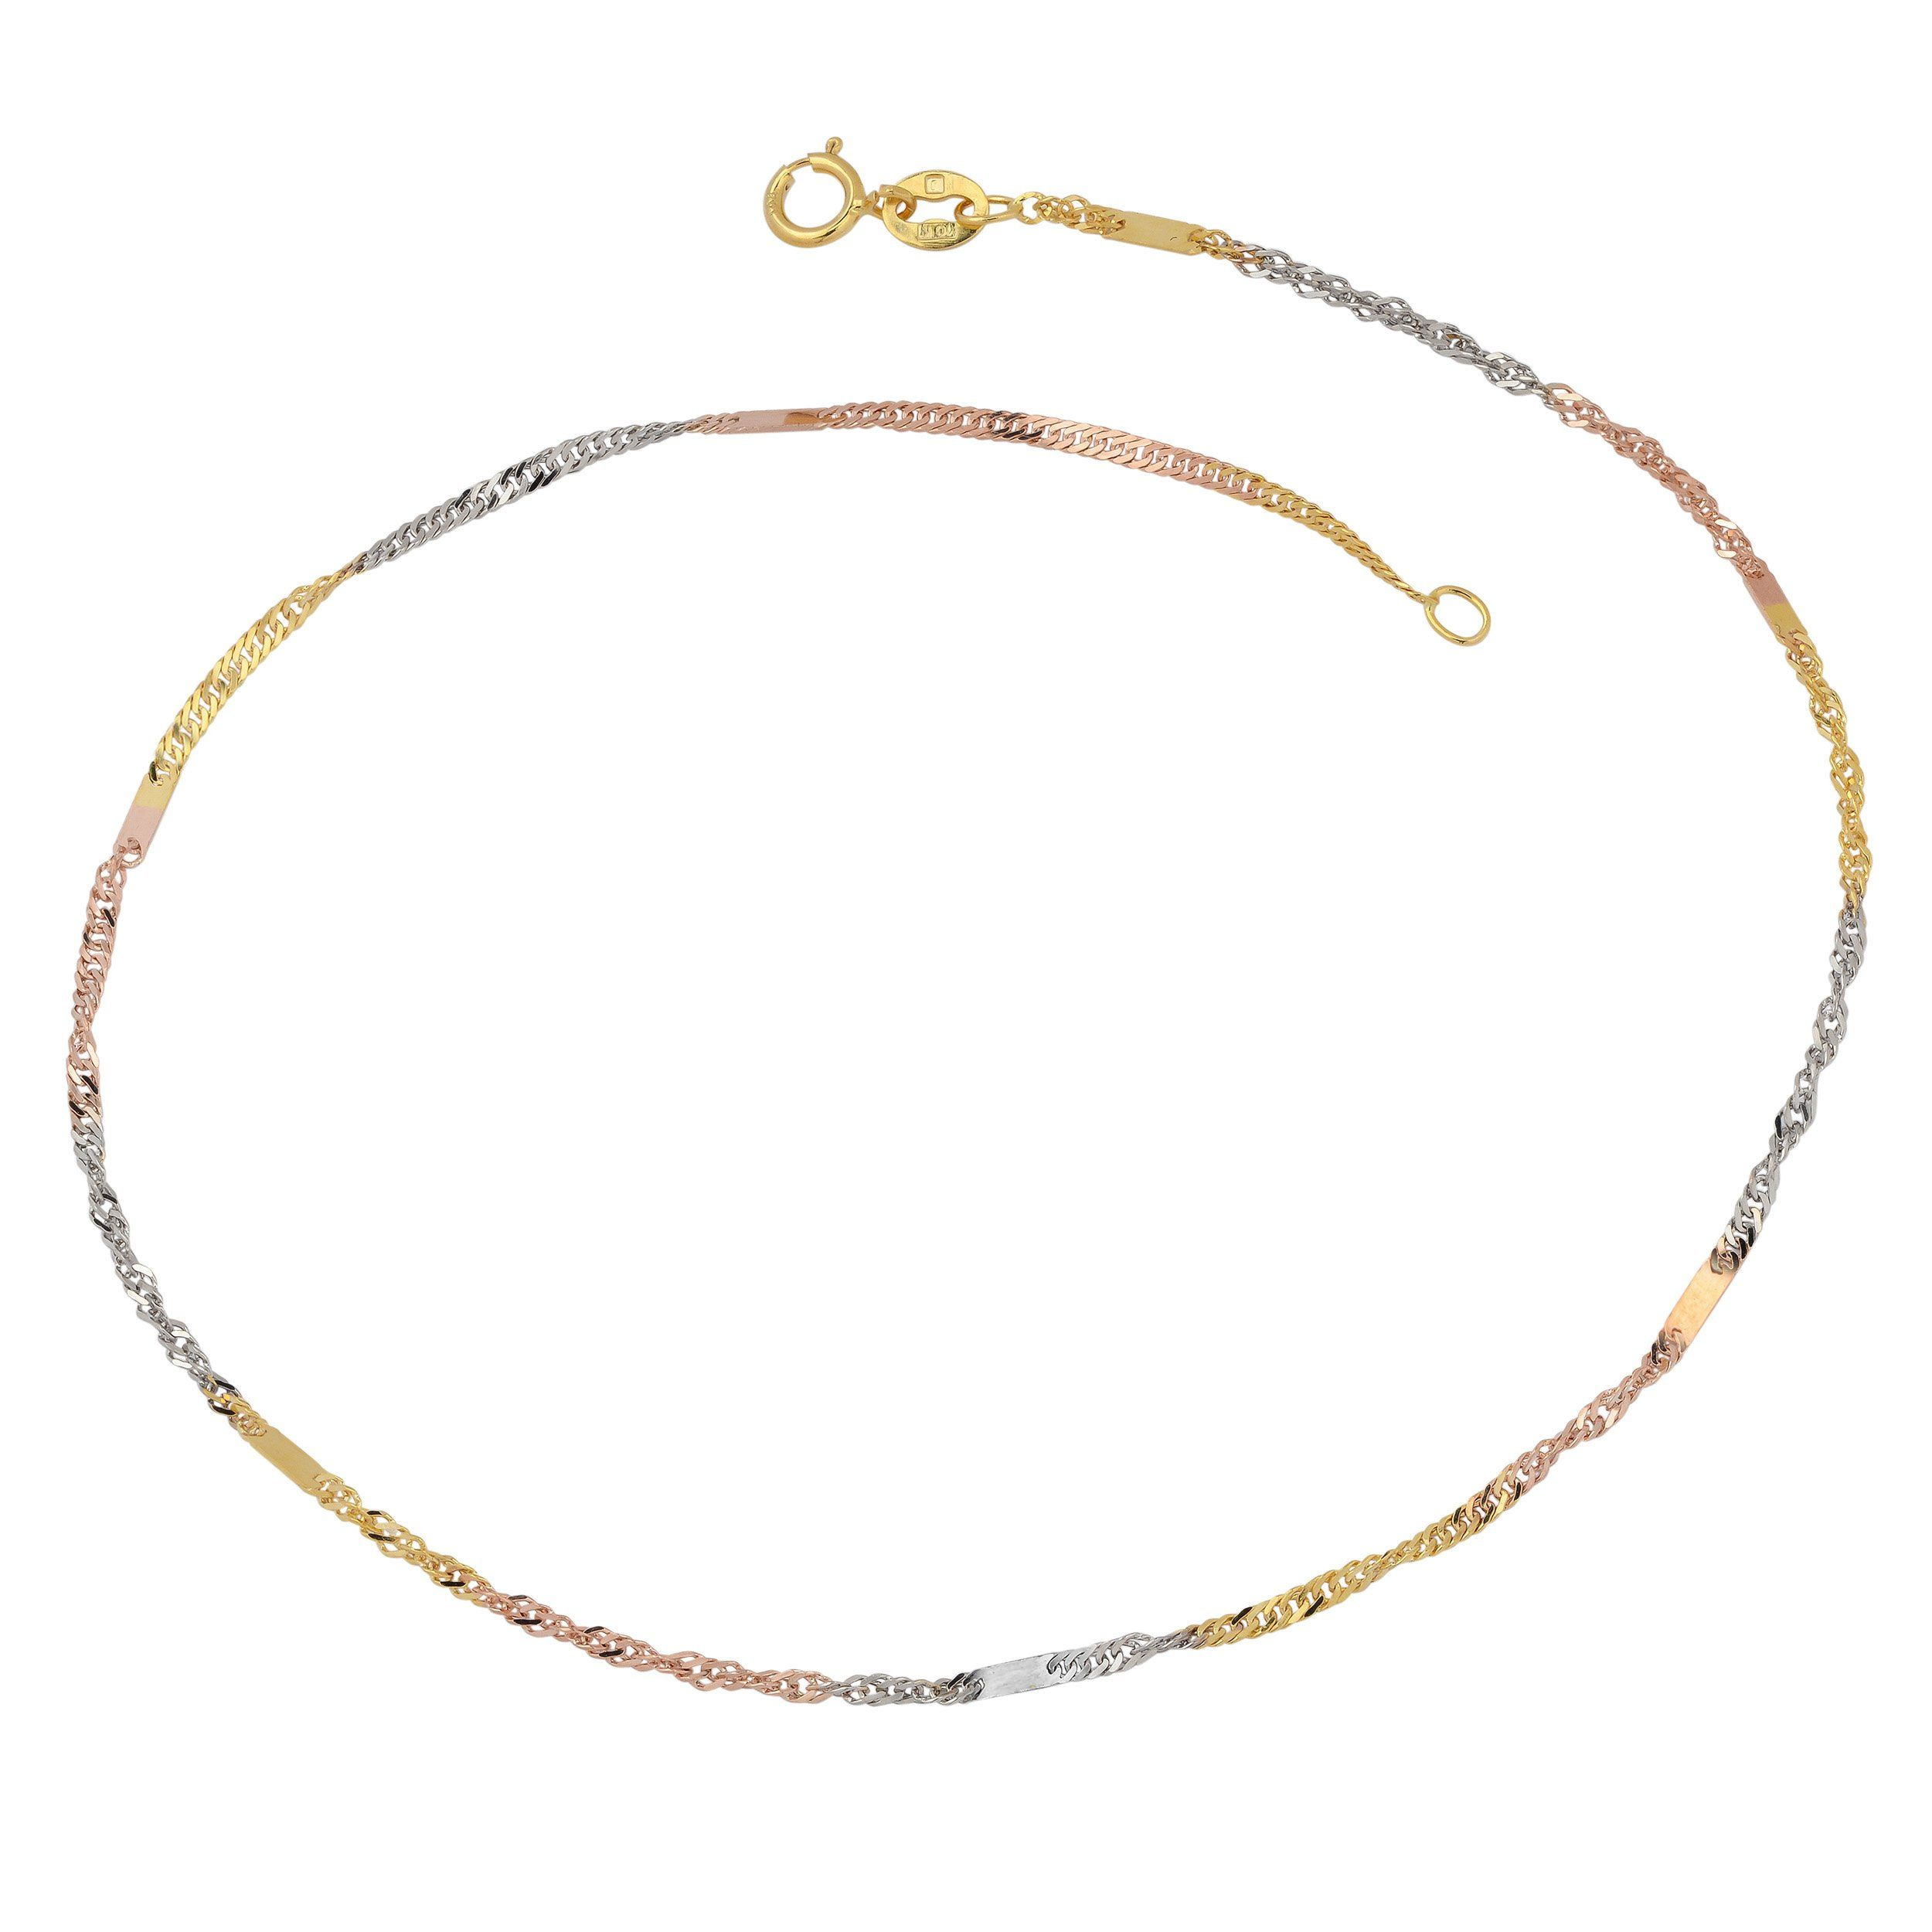 il bracelet anklet satellite gold fullxfull body ankle slave womens jewelry c chain anklets